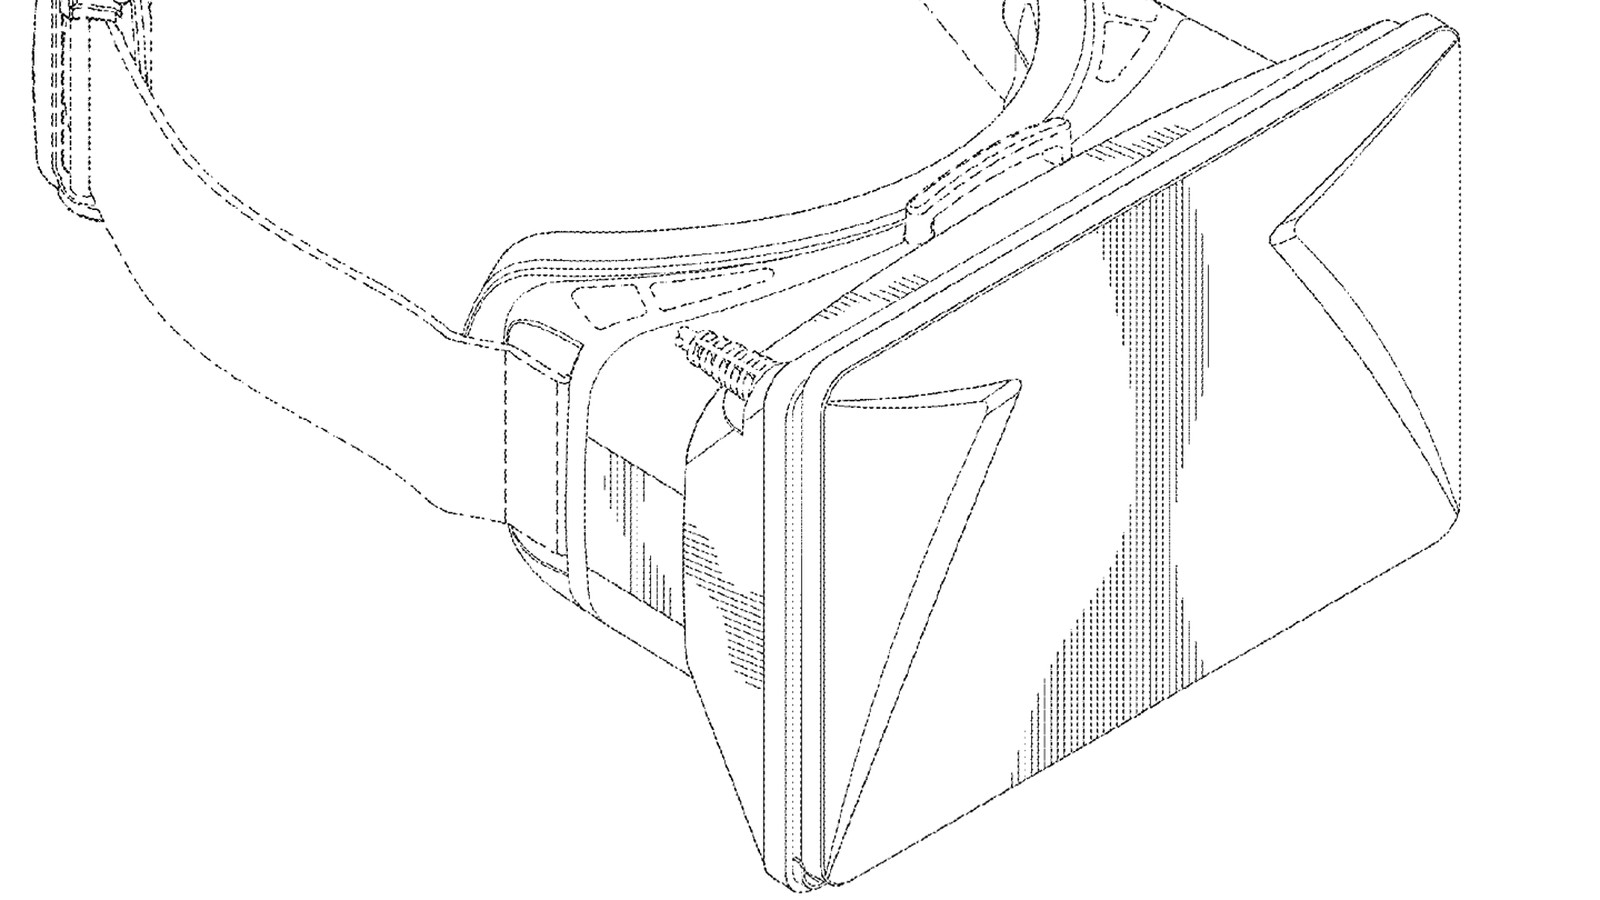 Oculus Vr Gets A Virtual Reality Headset Design Patent